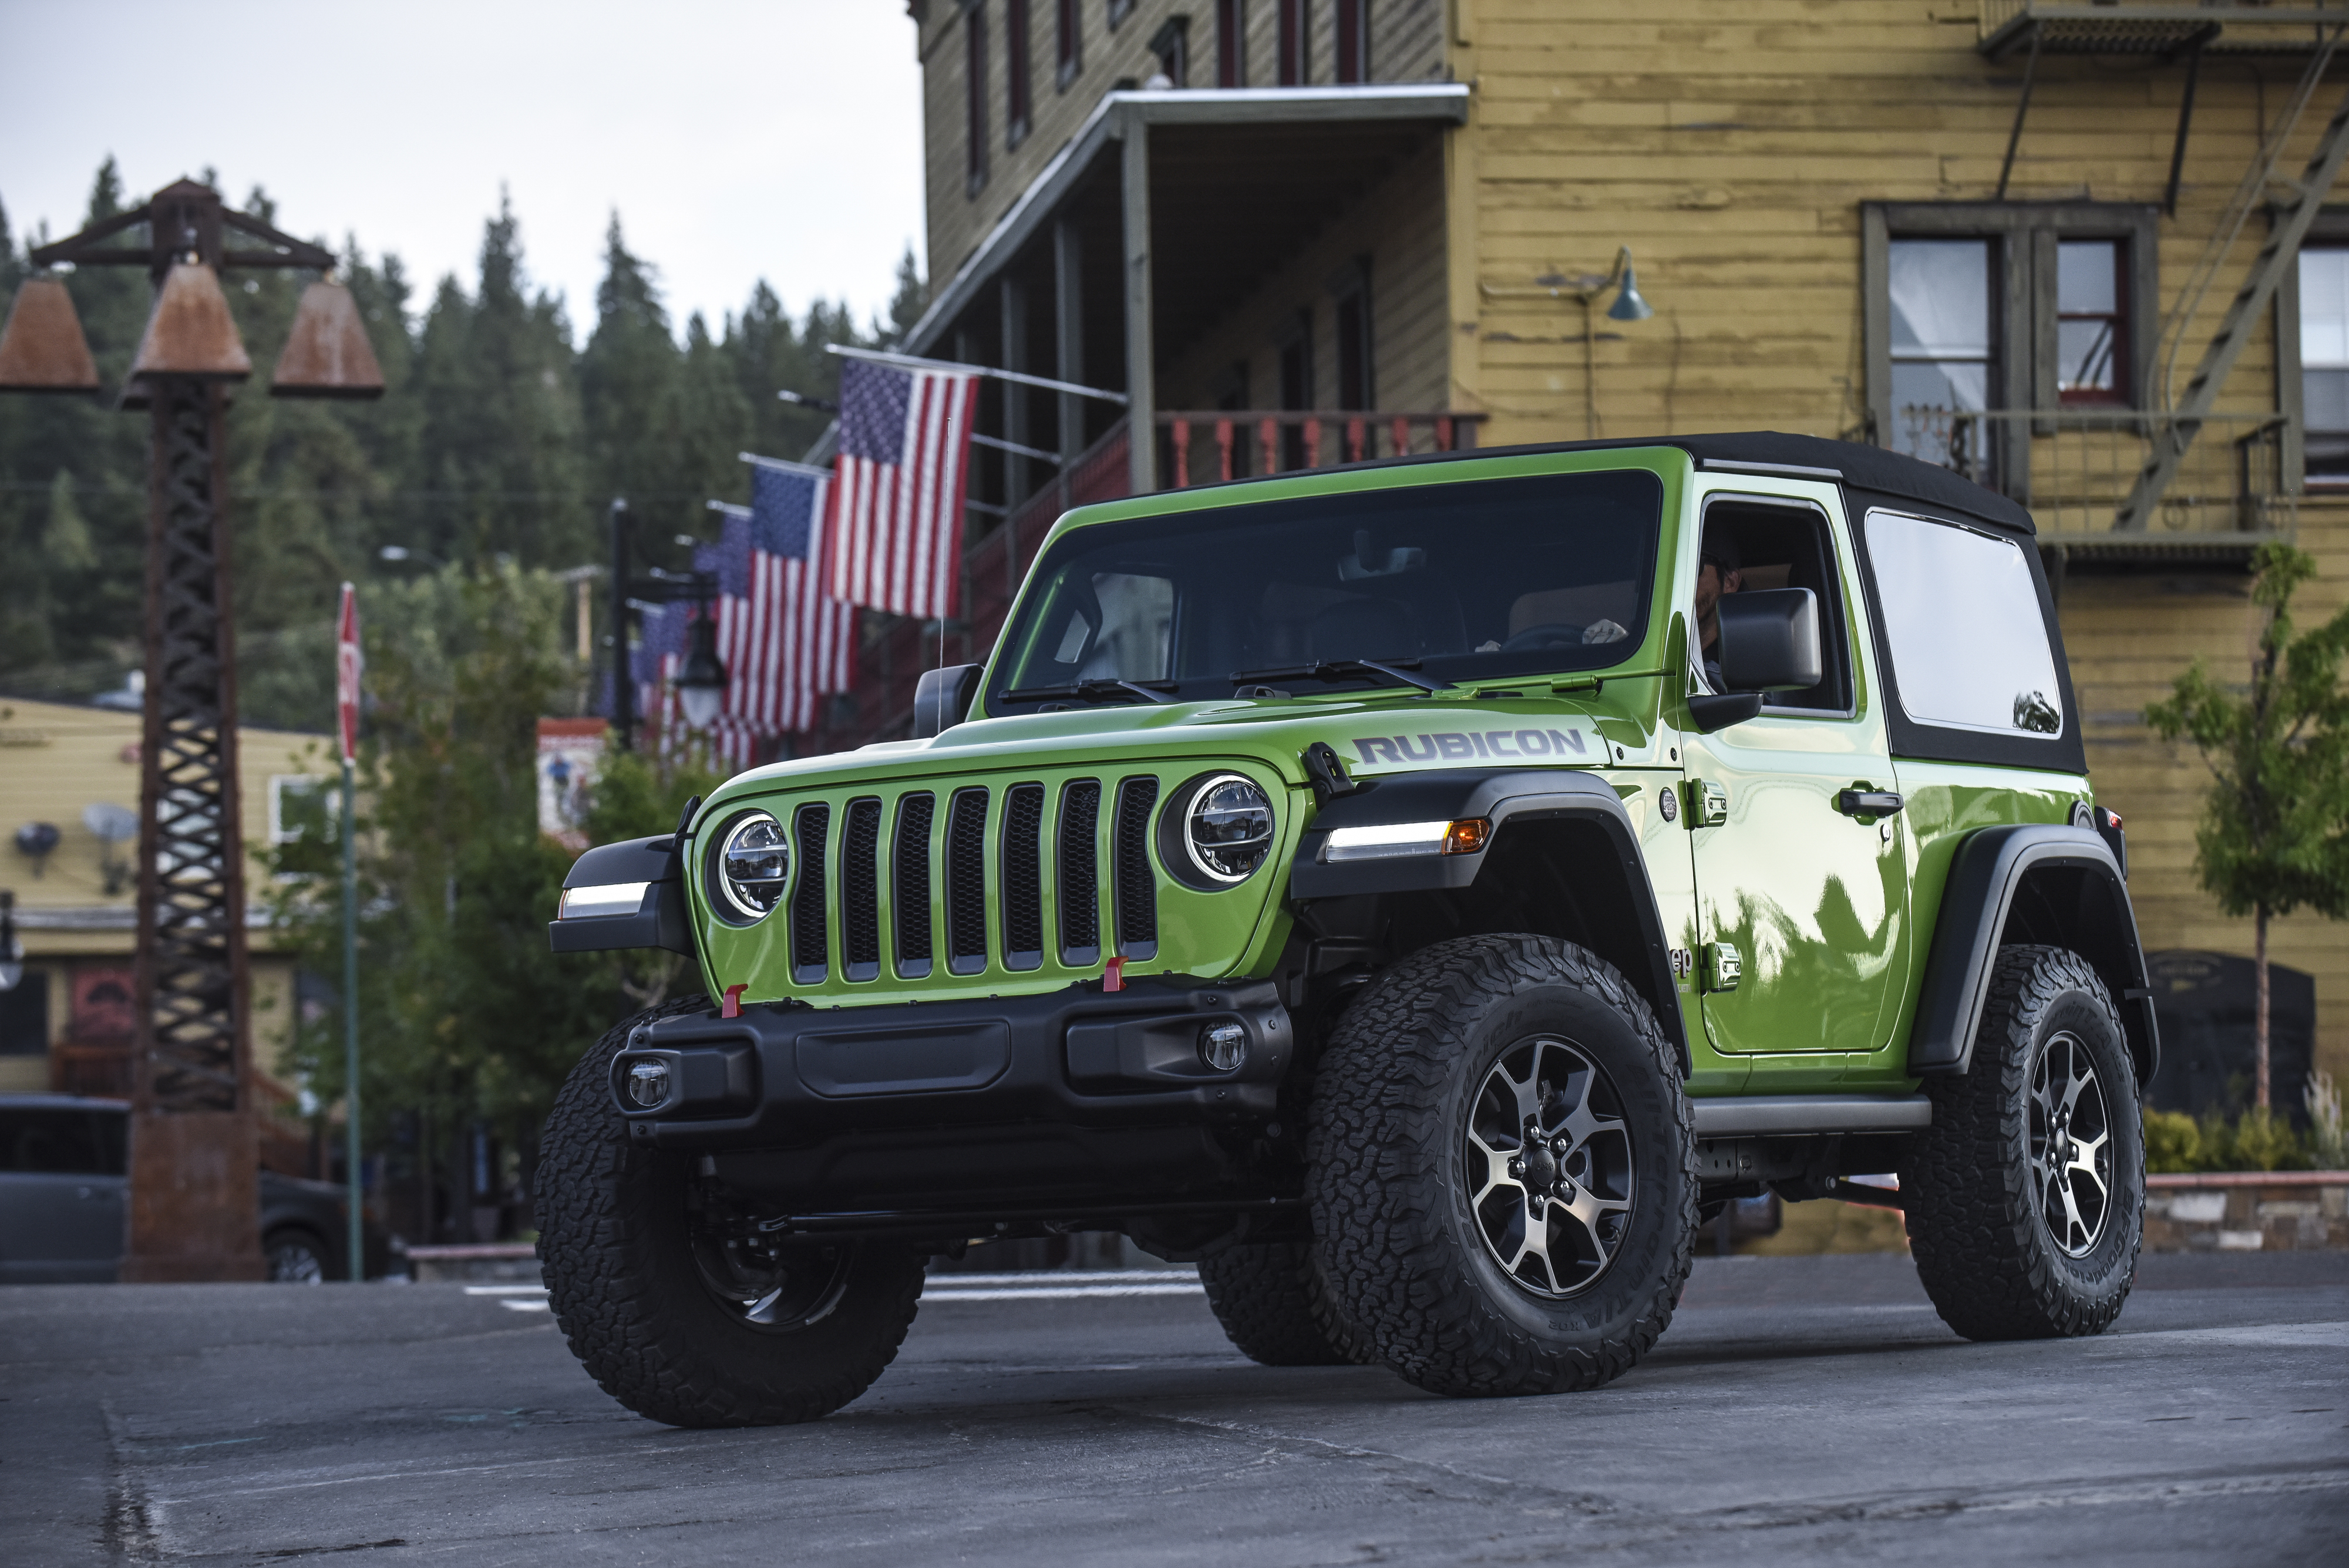 Jeep Wrangler Rubicon 2019 Review Price Features And Handling